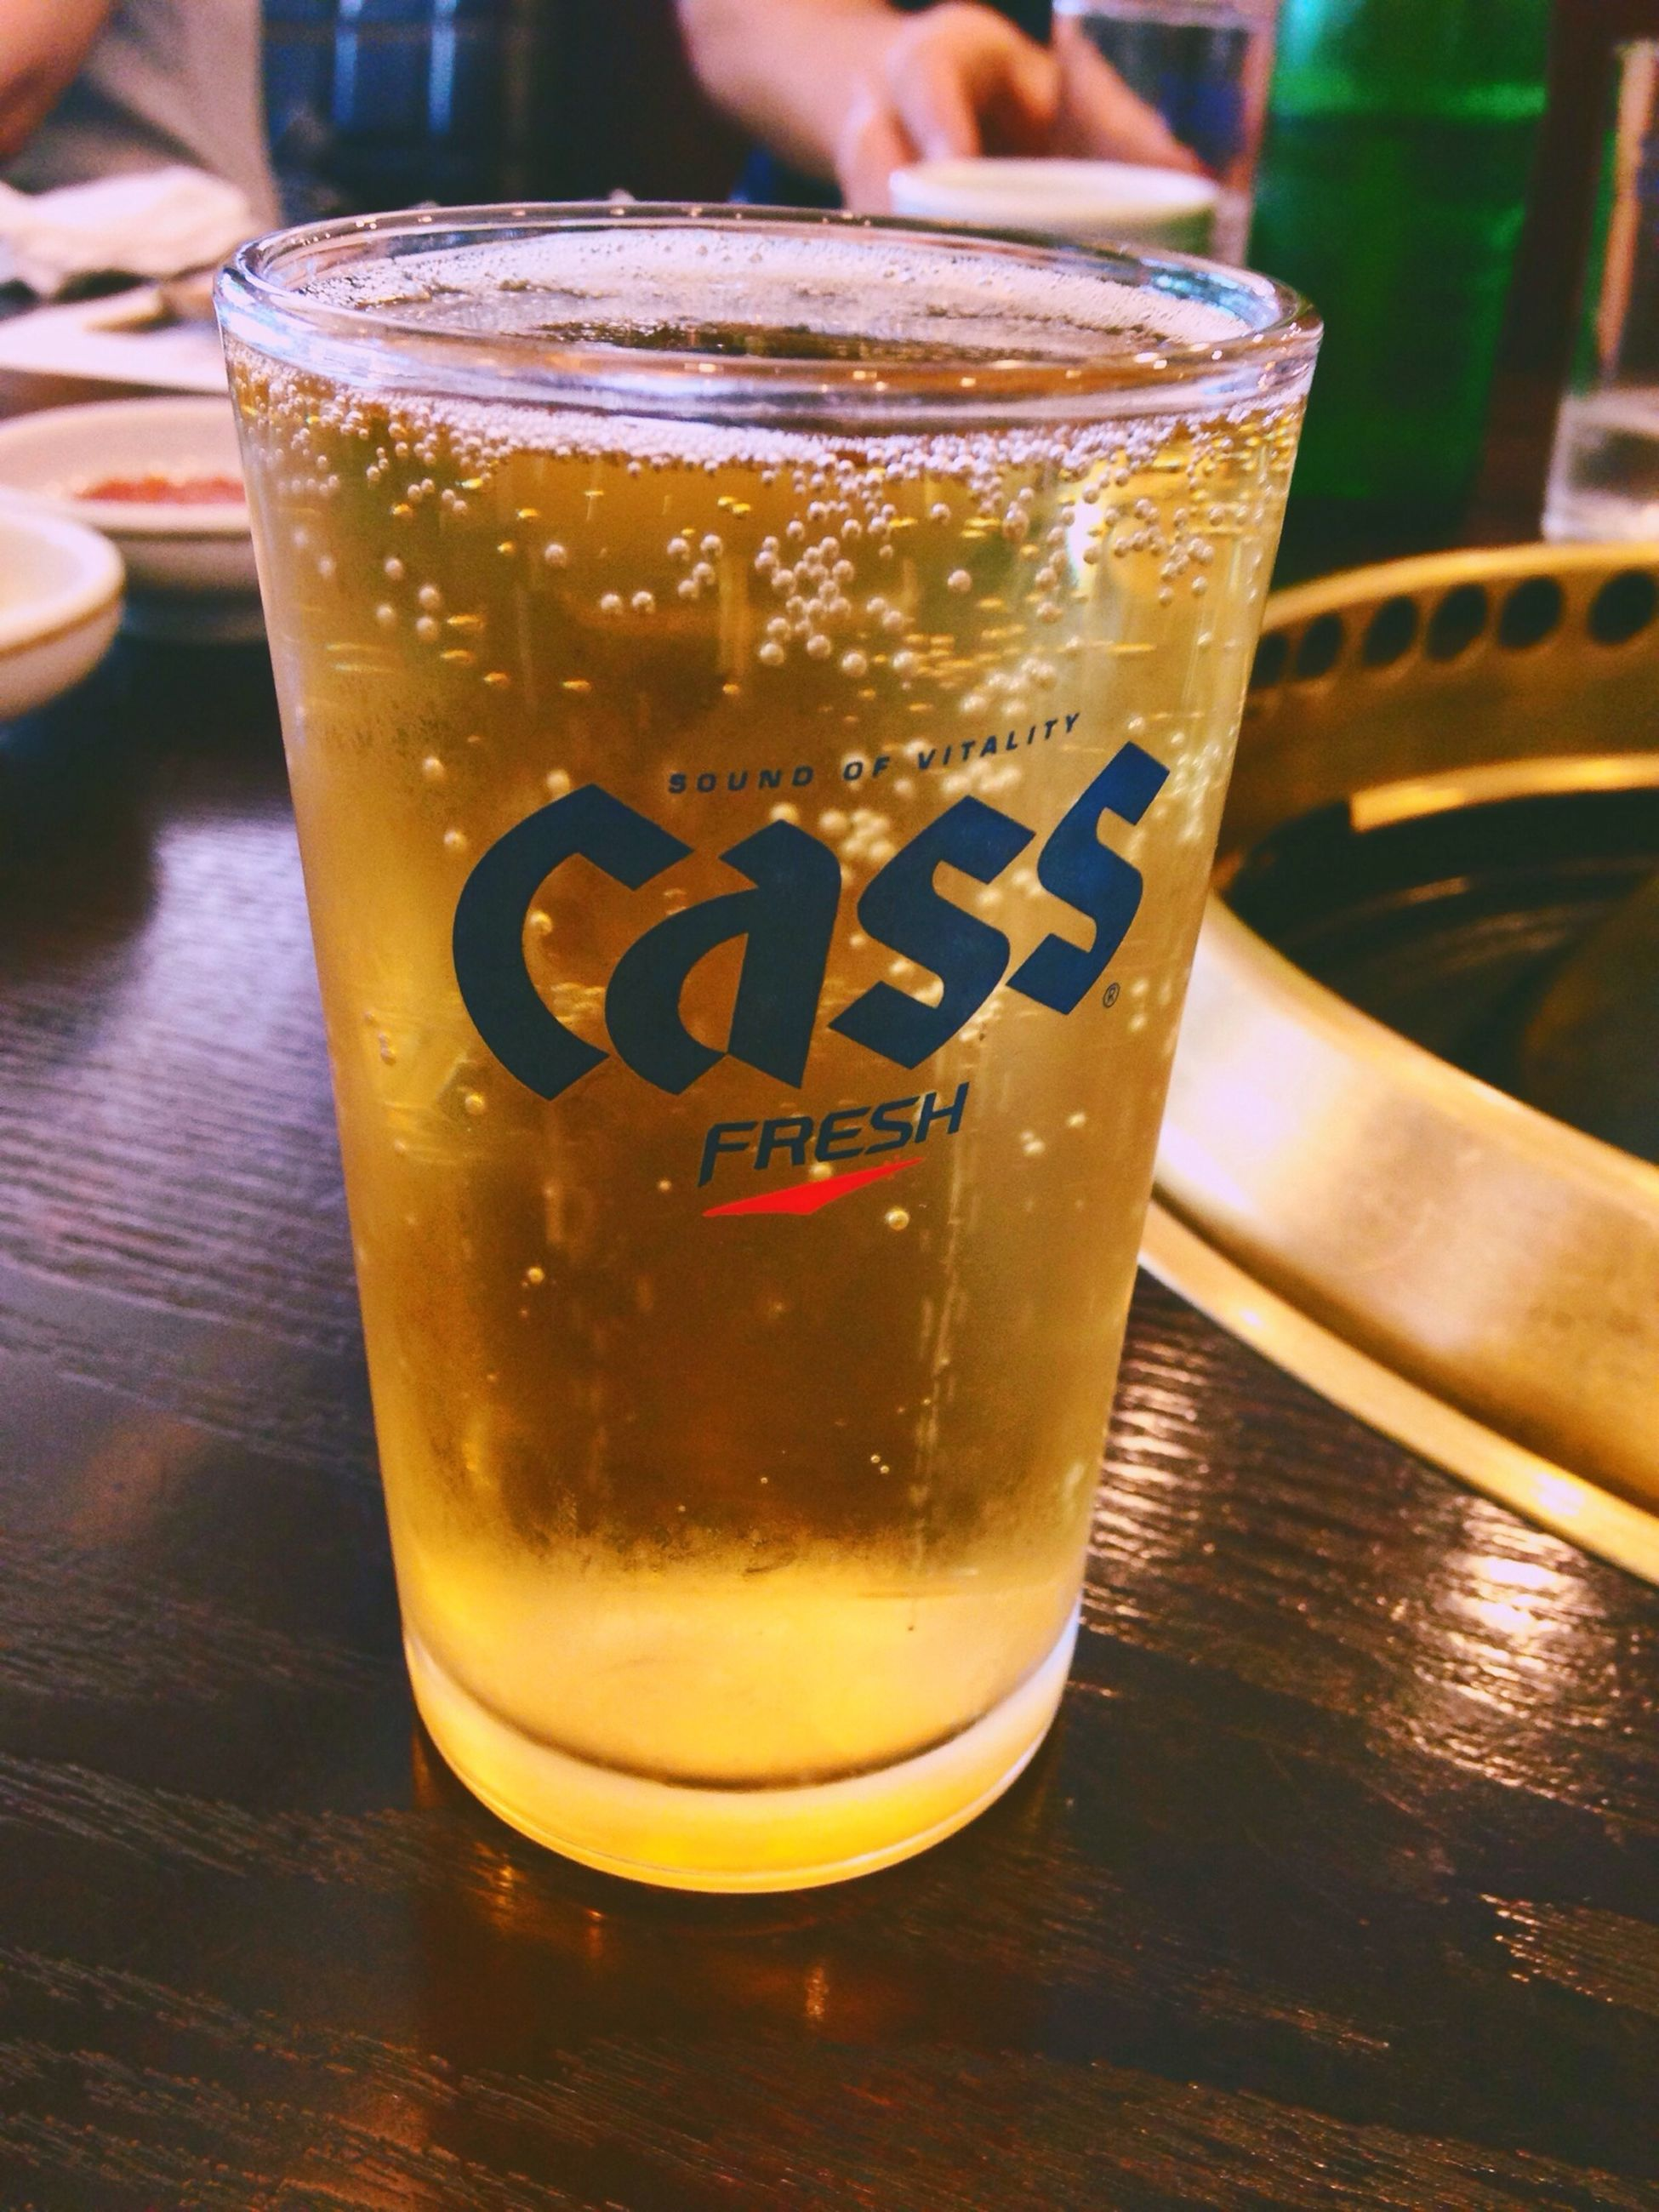 drink, food and drink, text, refreshment, western script, indoors, drinking glass, table, communication, close-up, freshness, still life, focus on foreground, alcohol, frothy drink, glass - material, beer - alcohol, beer glass, restaurant, coffee - drink